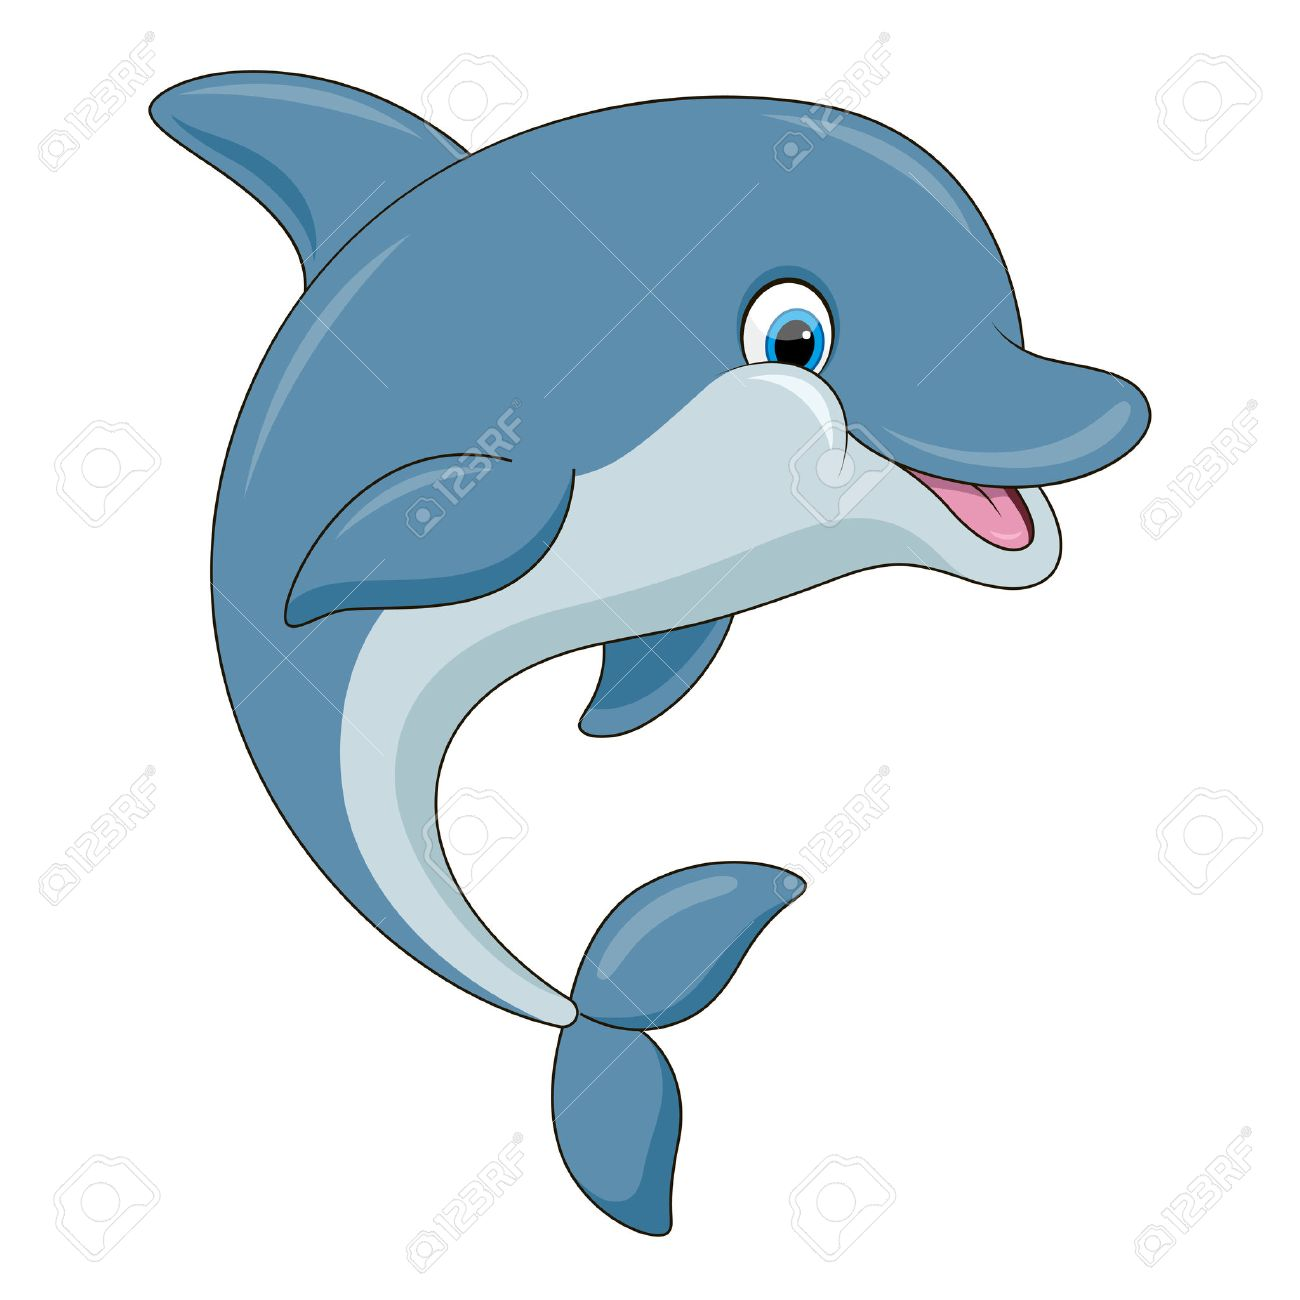 cute cartoon dolphin illustration with simple gradients all rh 123rf com dolphin pictures cartoon images dolphin cartoon images clip art